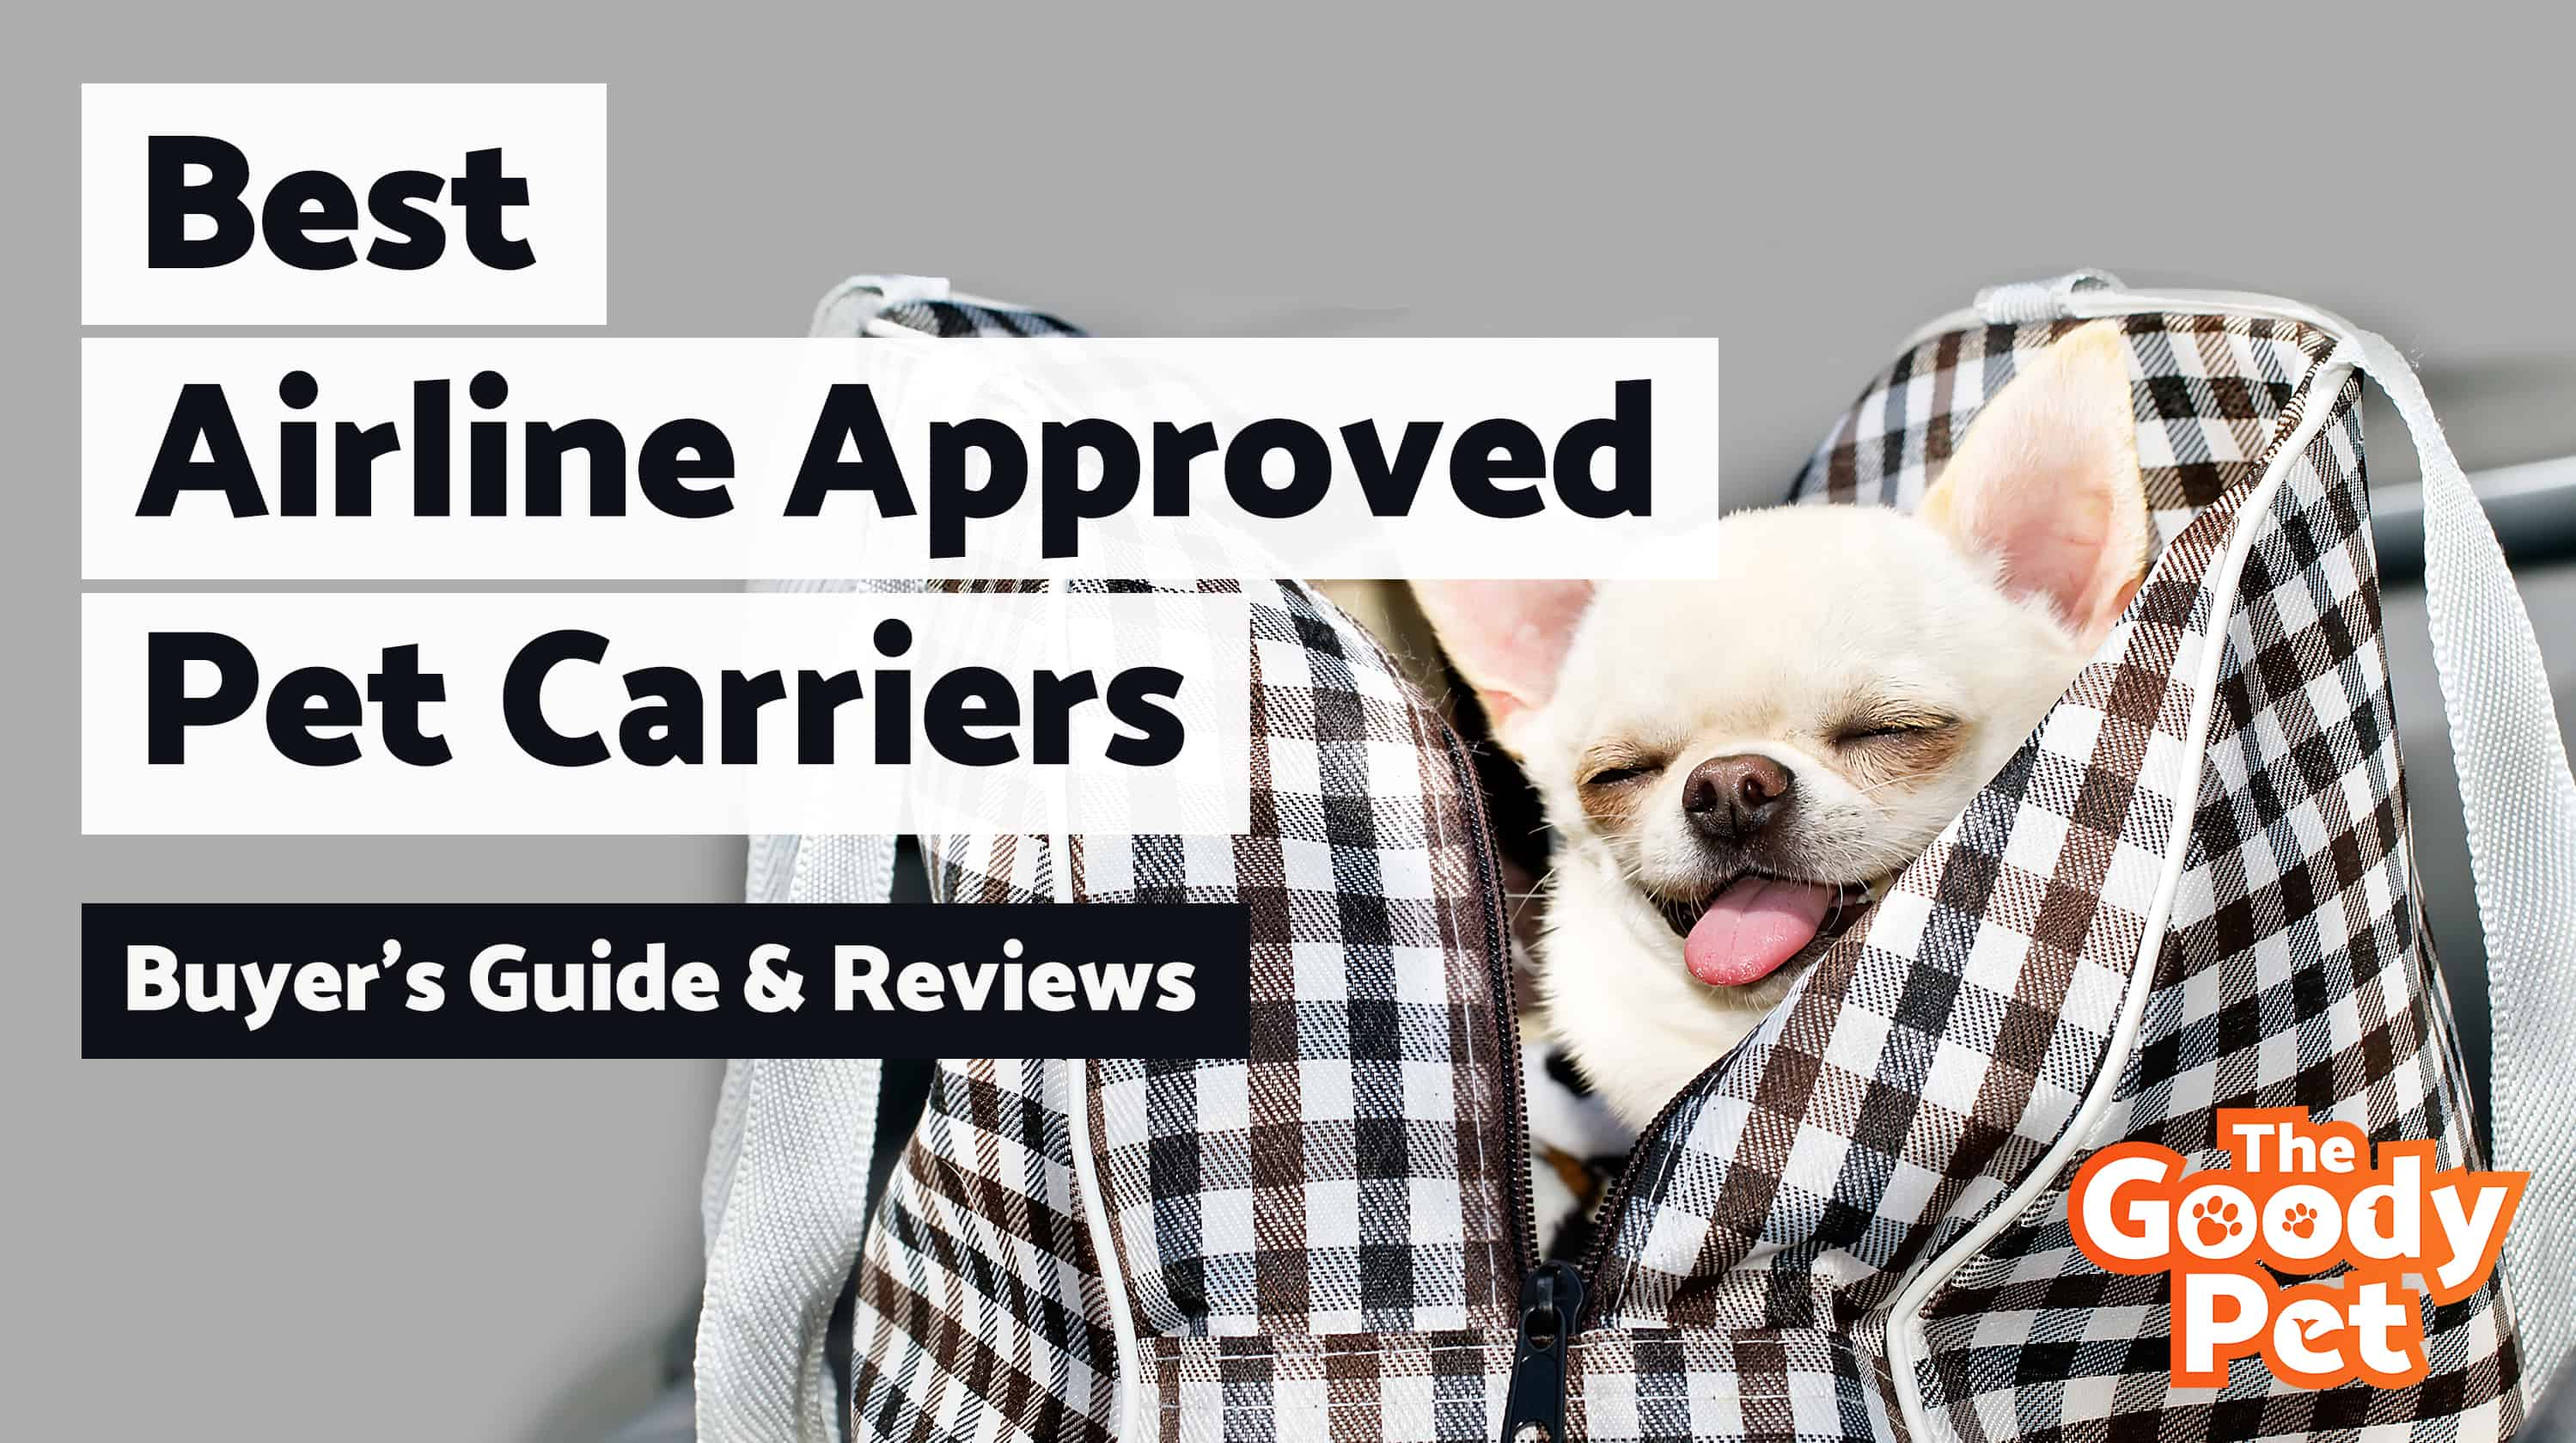 eac0c40148 8 Best Airline Approved Pet Carriers (For In-Cabin Flights!) And Buyer's  Guide | The Goody Pet